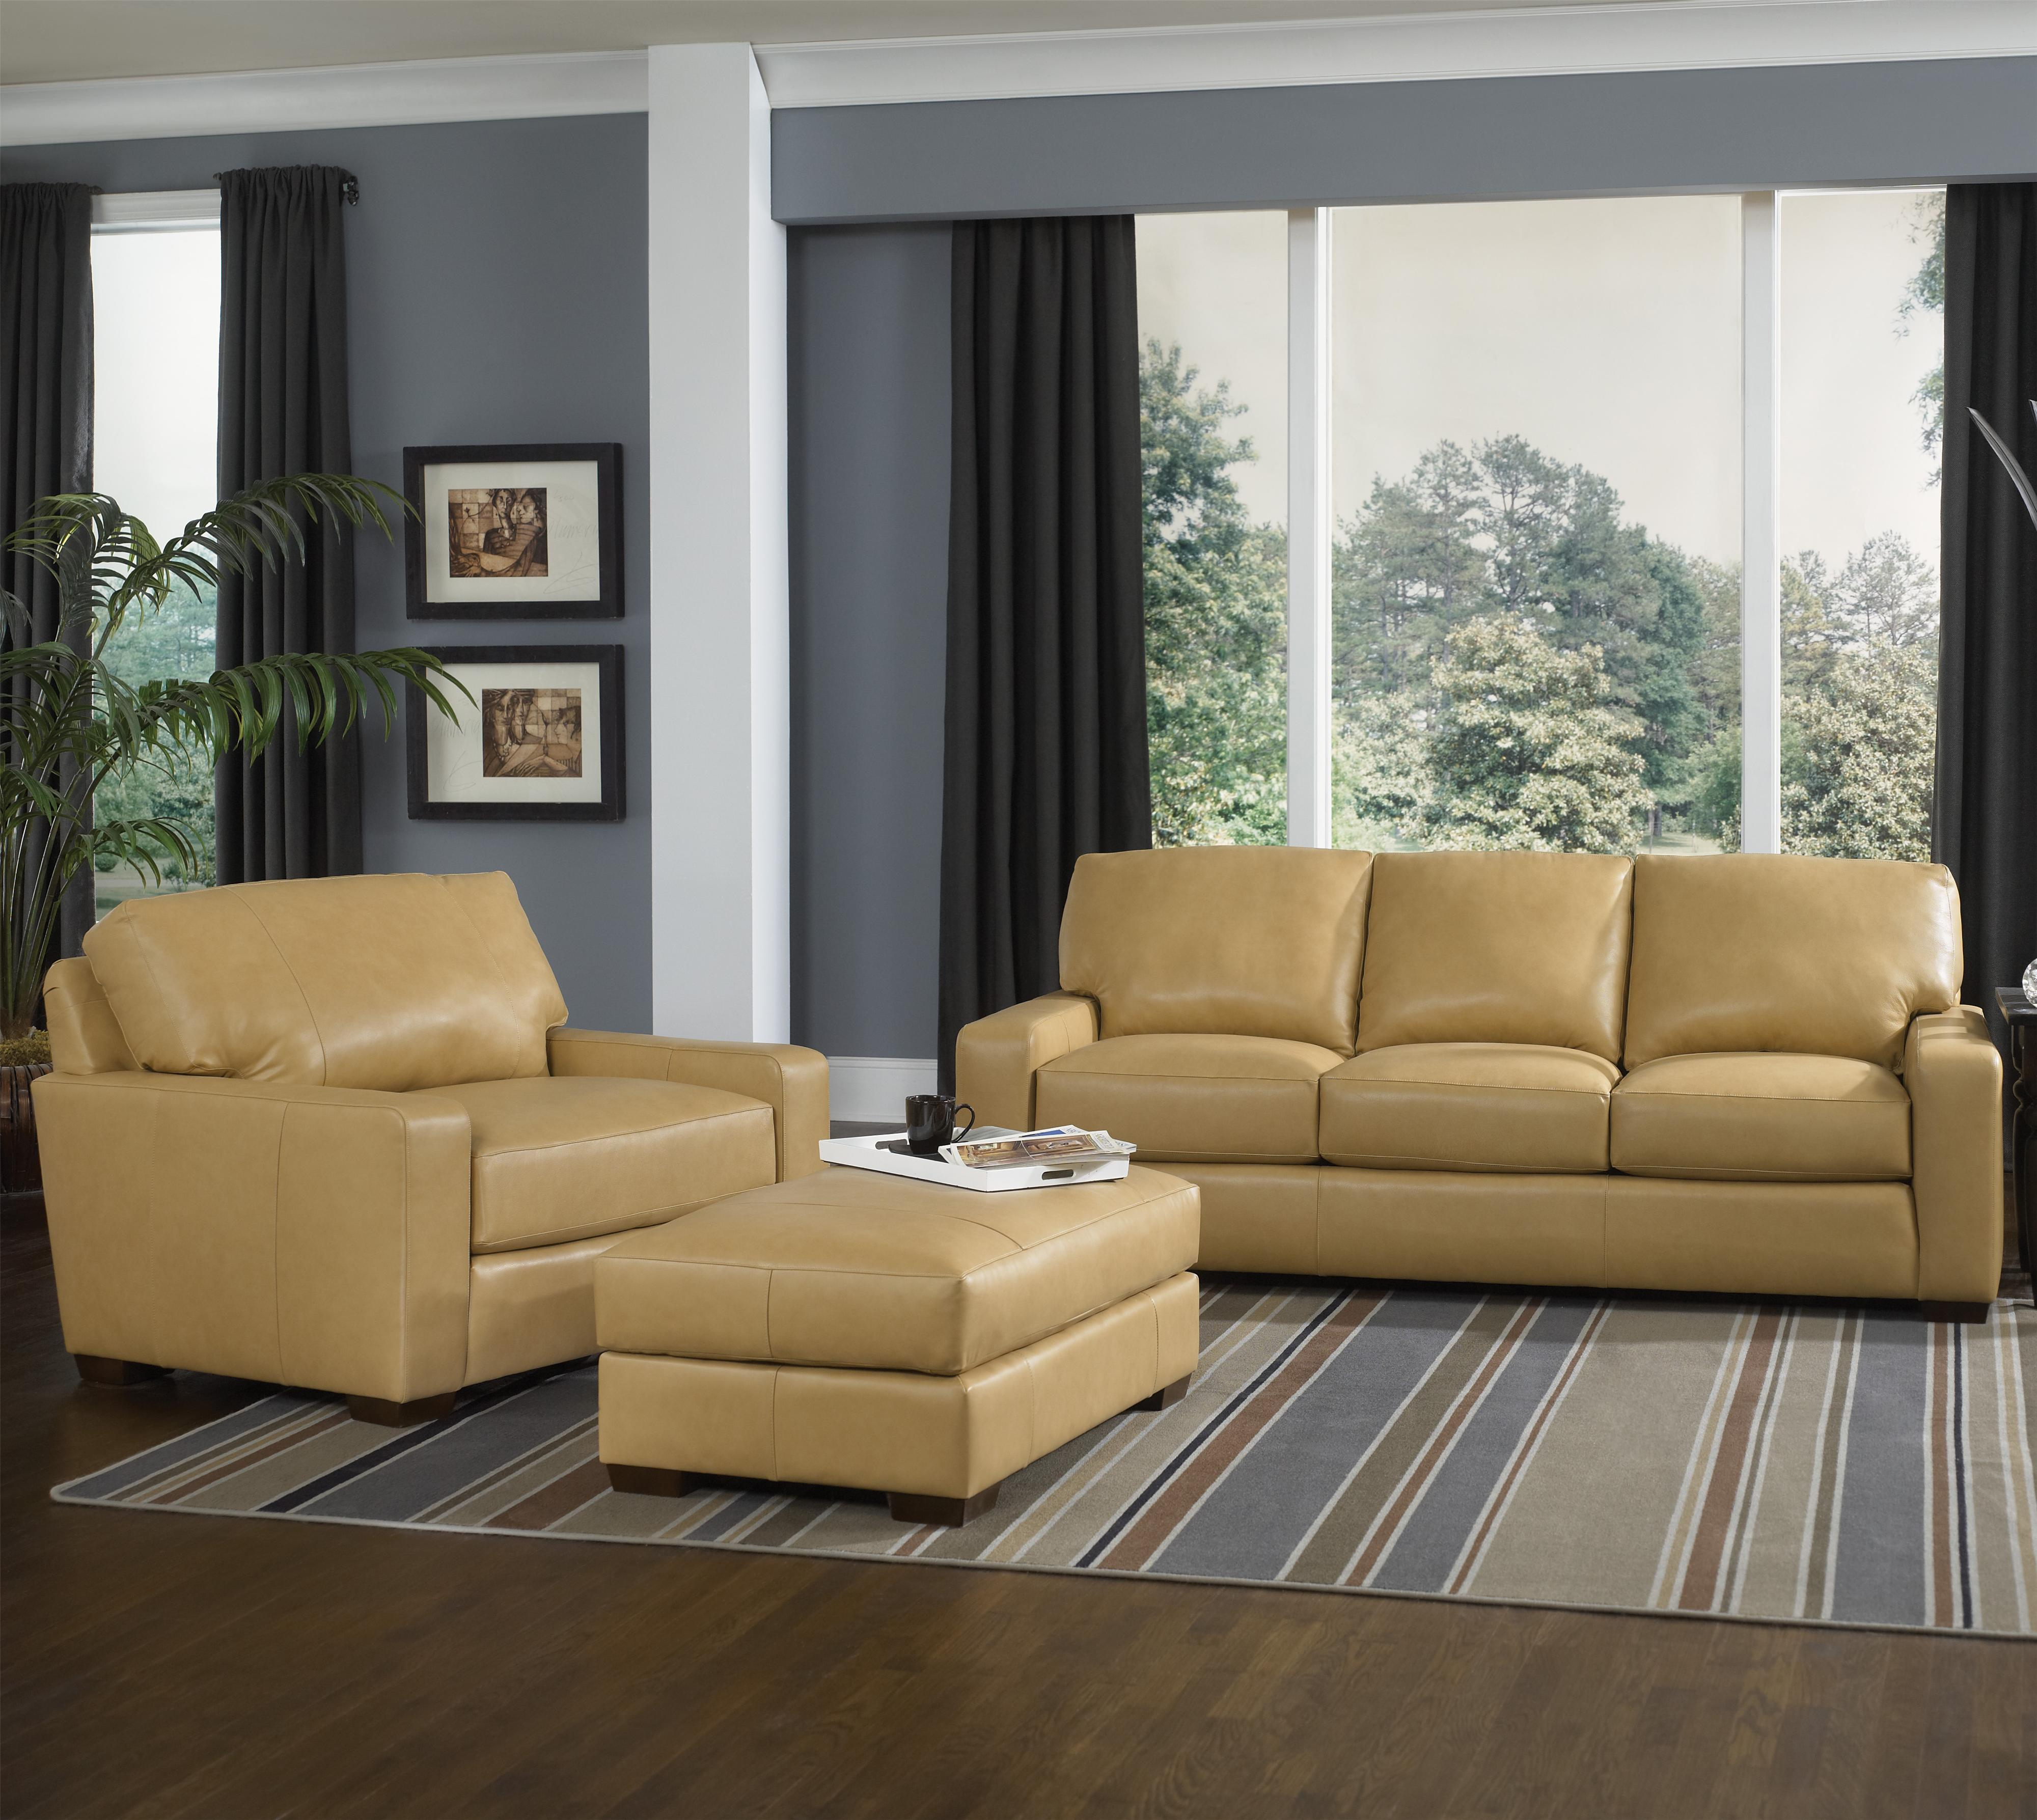 Smith Brothers Build Your Own (8000 Series) Large Corner Sectional Sofa - Wayside Furniture - Sectional Sofas : build your own sectional couch - Sectionals, Sofas & Couches